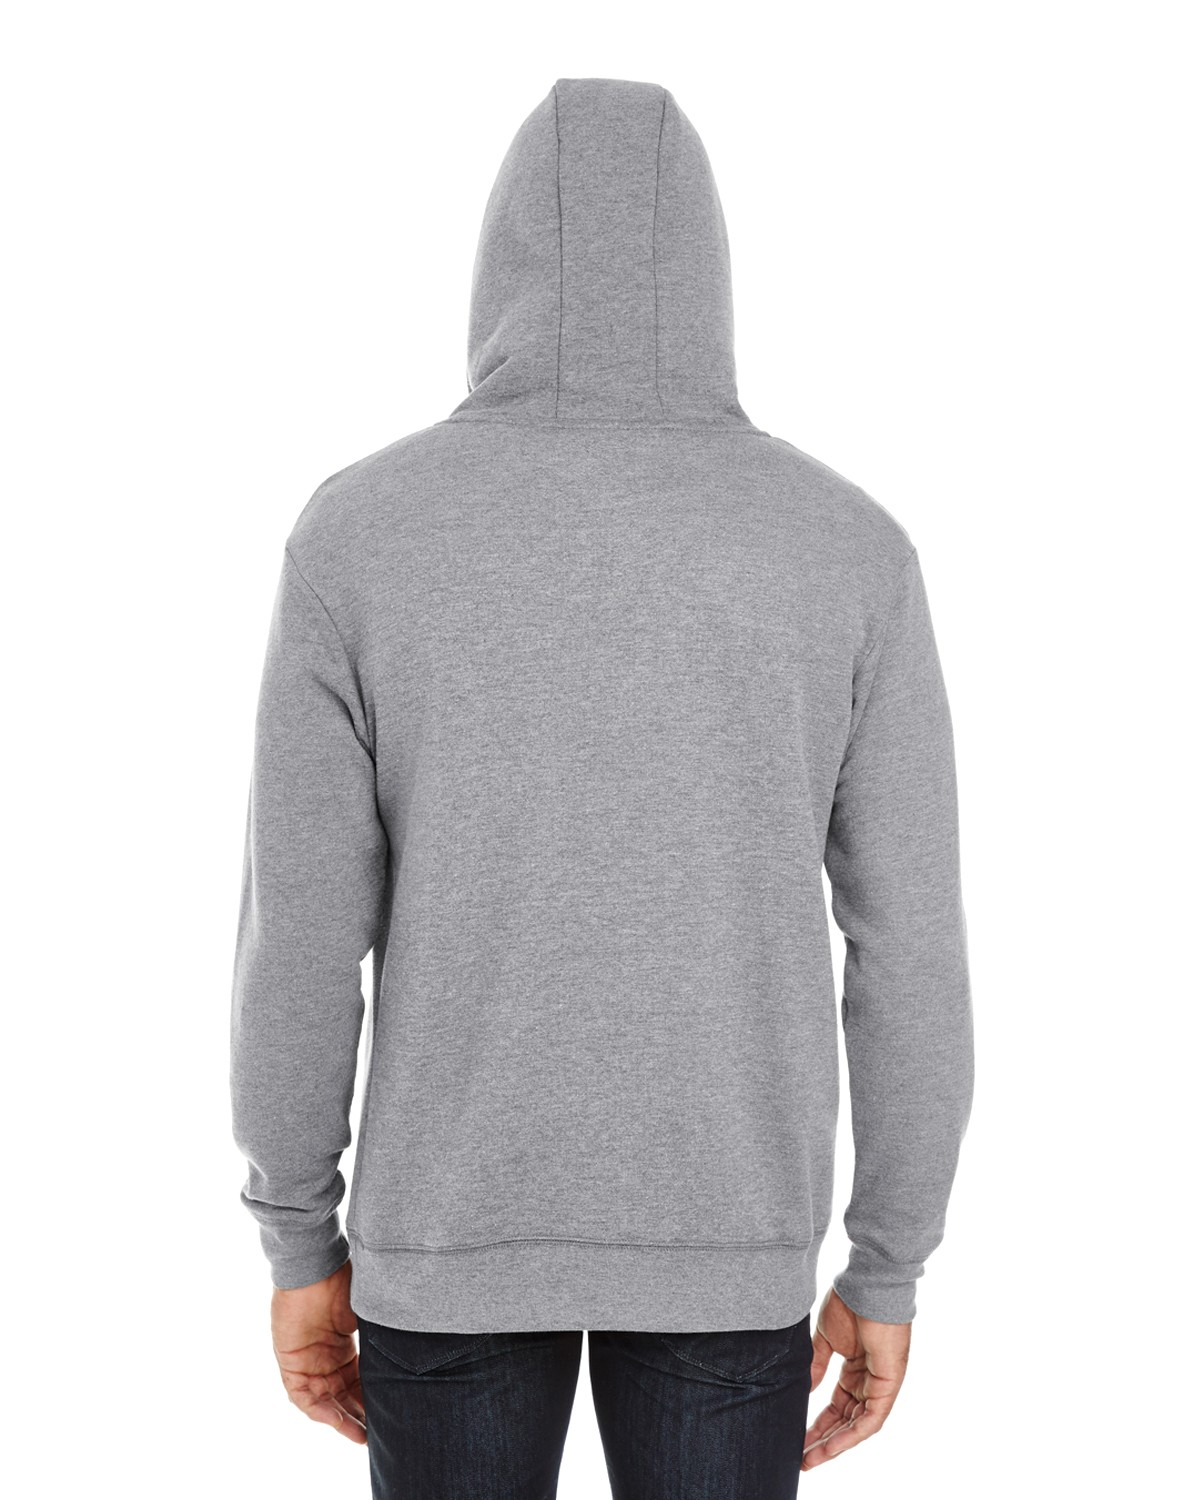 321H Threadfast Apparel CHARCOAL HEATHER